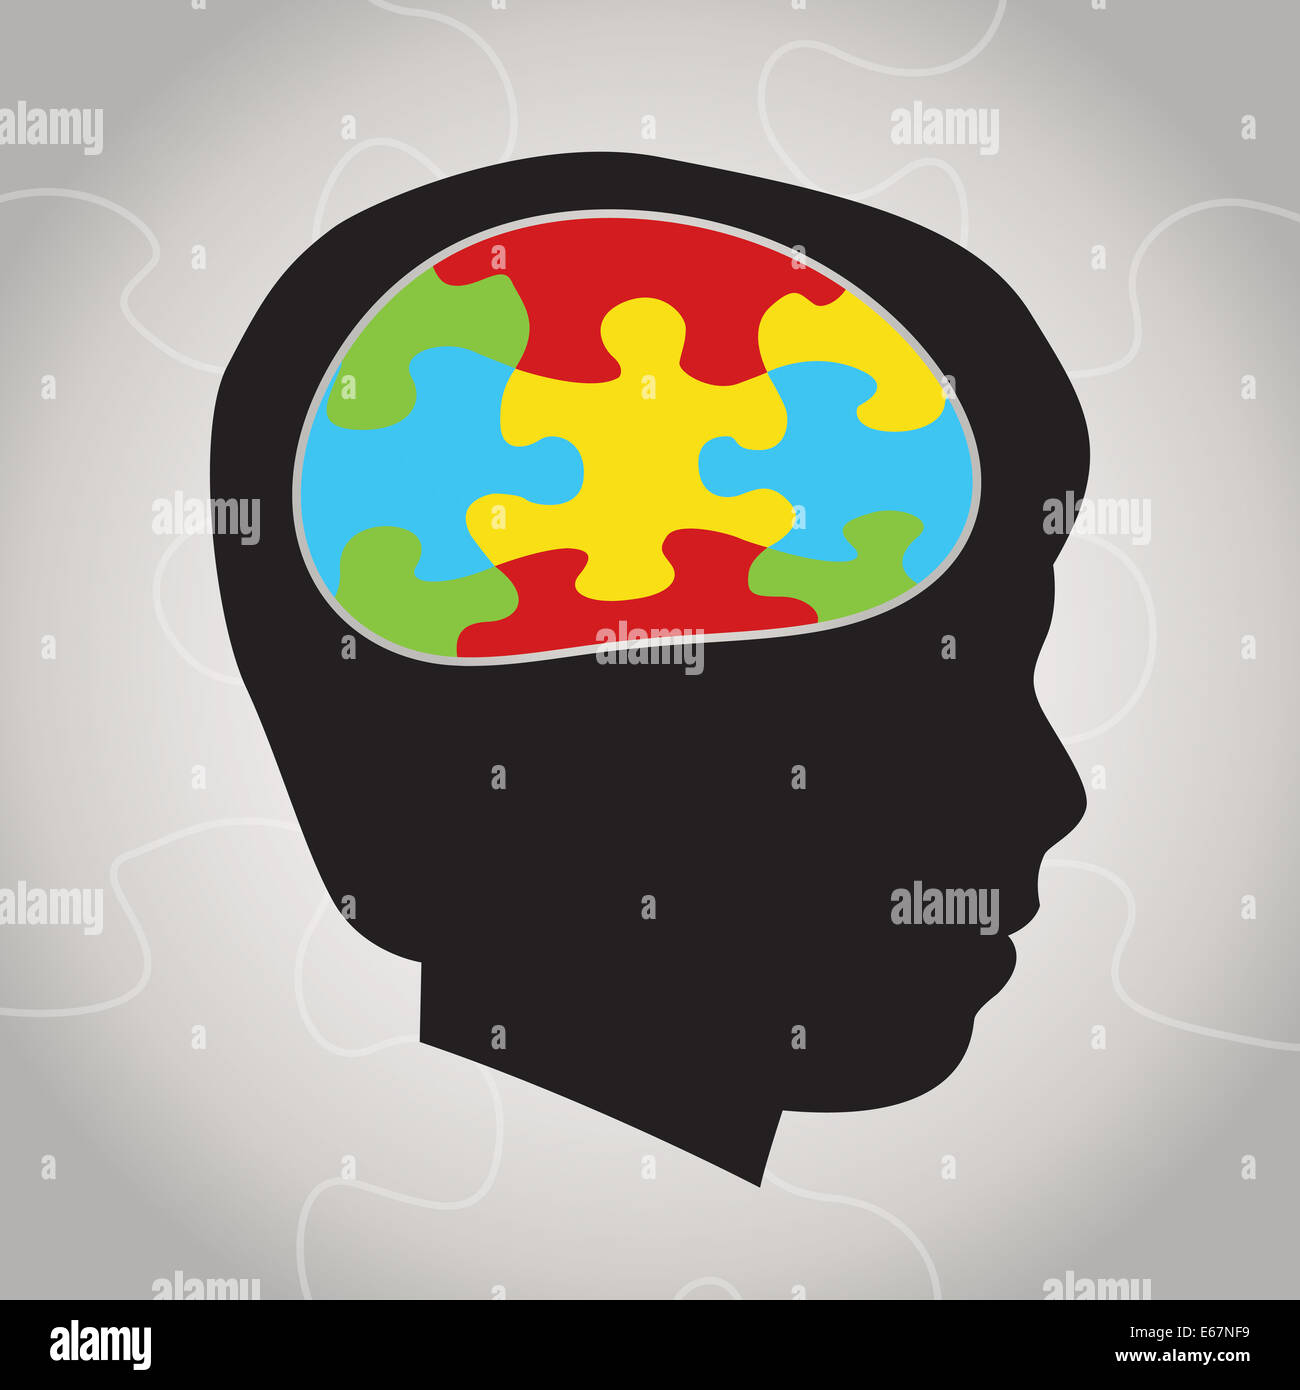 A silhouette of a child with symbolic autism puzzle pieces making the brain space. - Stock Image